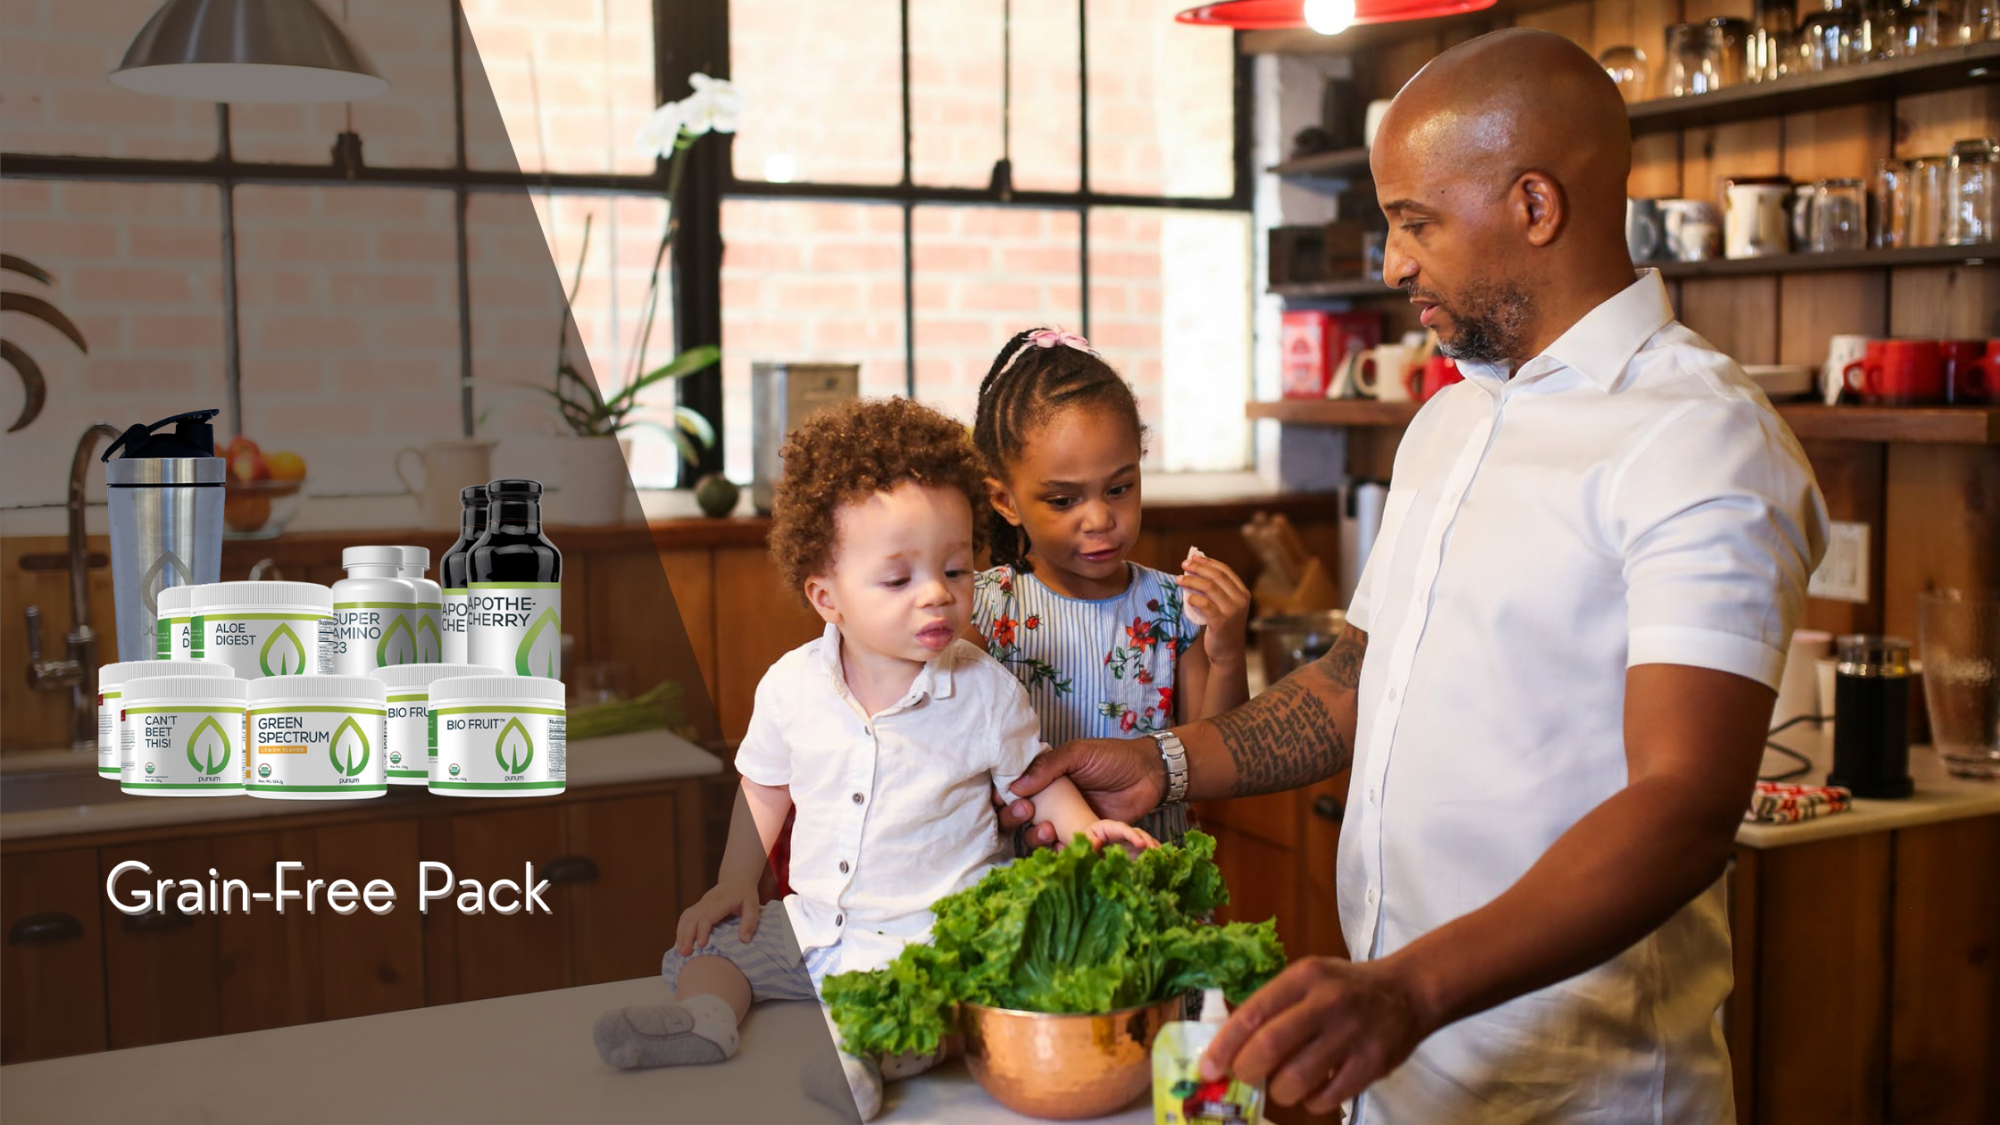 Meet the Grain-Free Pack: Schedule & Product Knowledge